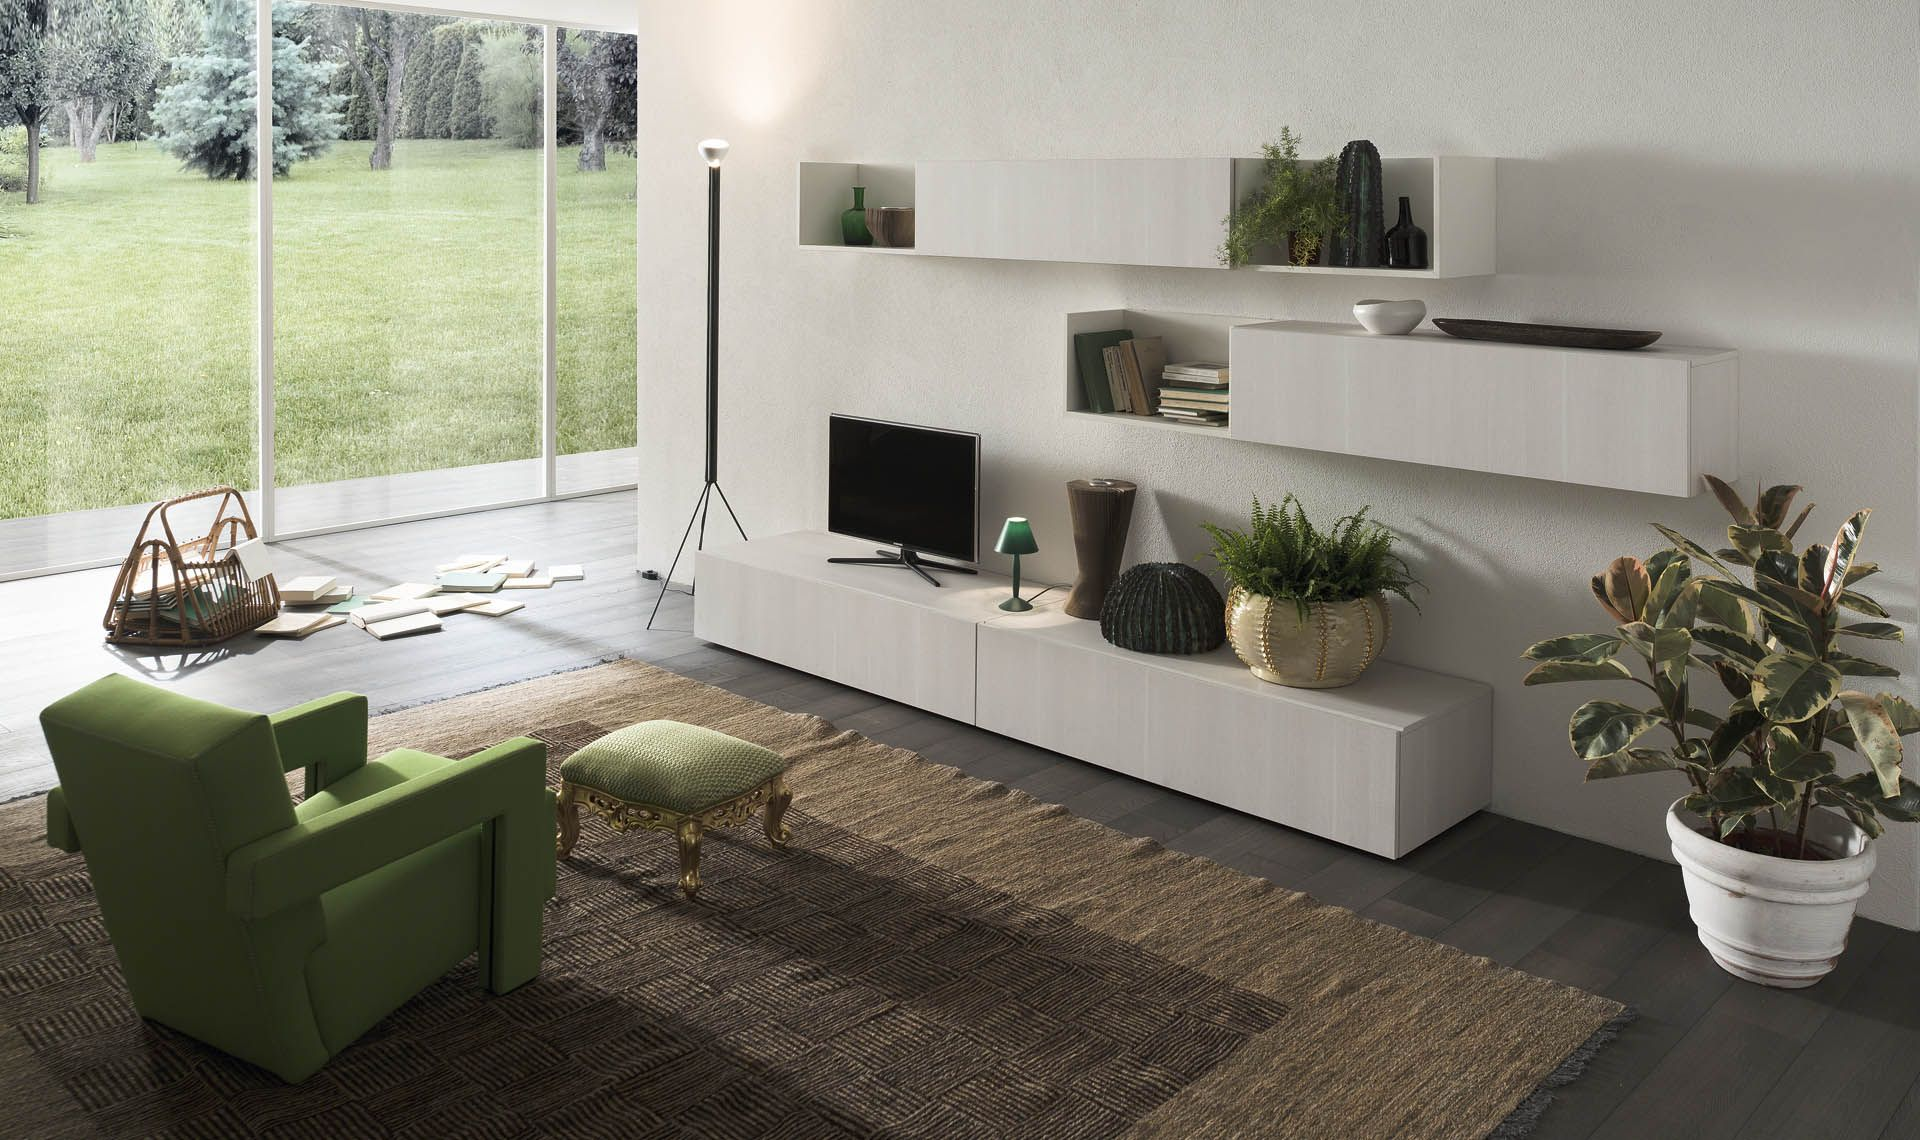 Design Alf Da Fre alf da fre day collection bookcases sideboards by casarredo pinterest room and house